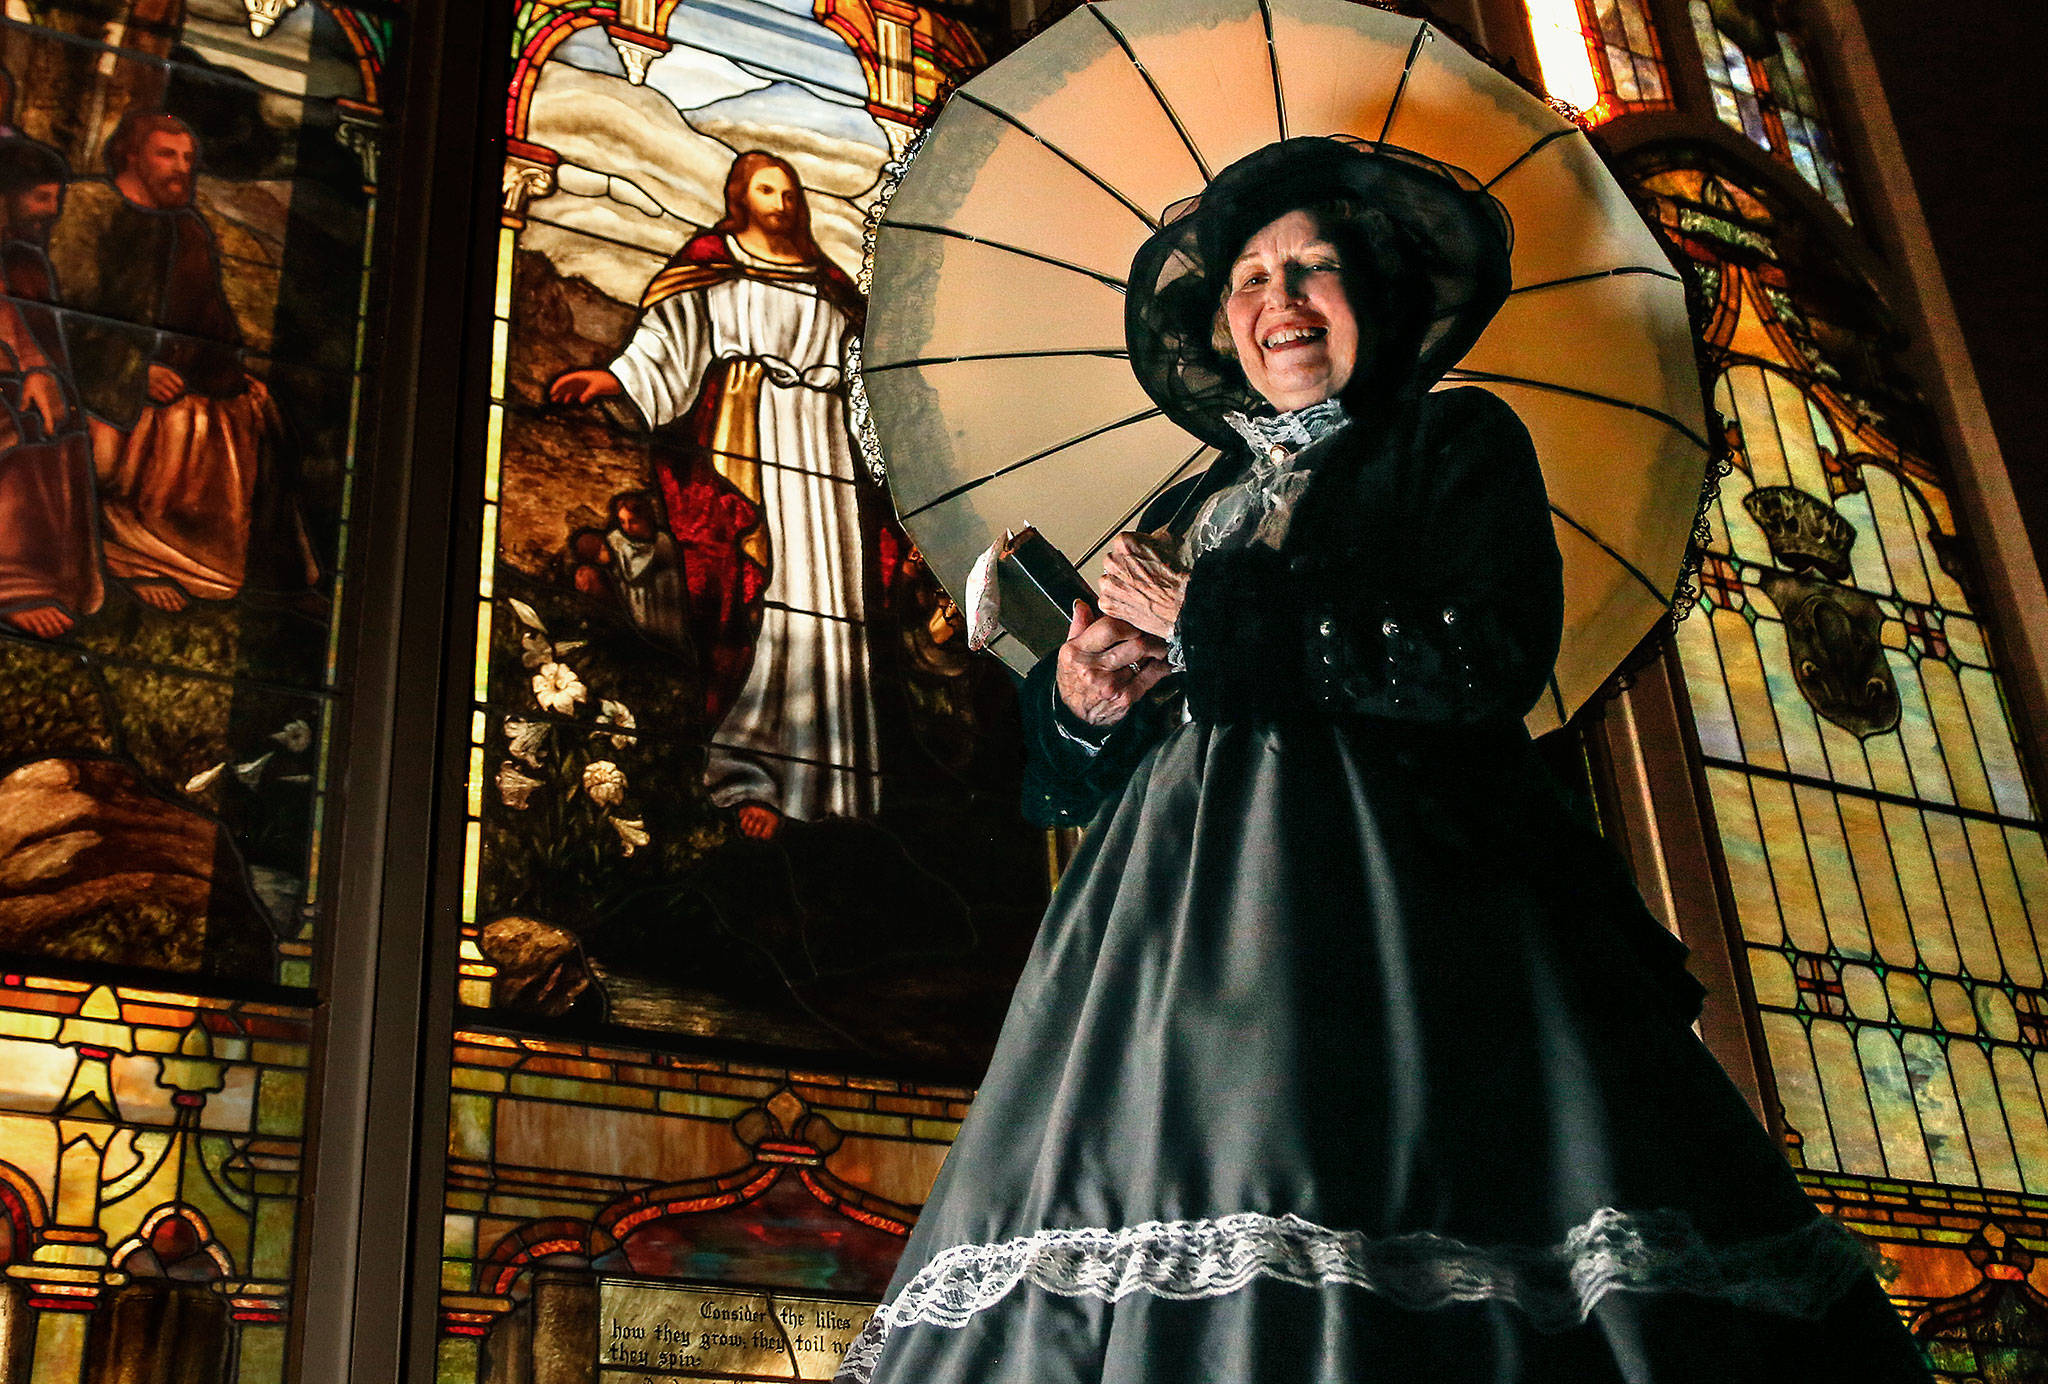 """Carolyn Hetherwick Goza, a member of Everett's First Presbyterian Church, models a period dress at the church that would have been appropriate Sunday garb in 1892. Goza will perform an historical skit at Sunday's """"Celebrating God's Love"""" concert, an event at First Presbyterian marking the 125th anniversaries of five Everett churches. (Dan Bates / The Herald)"""